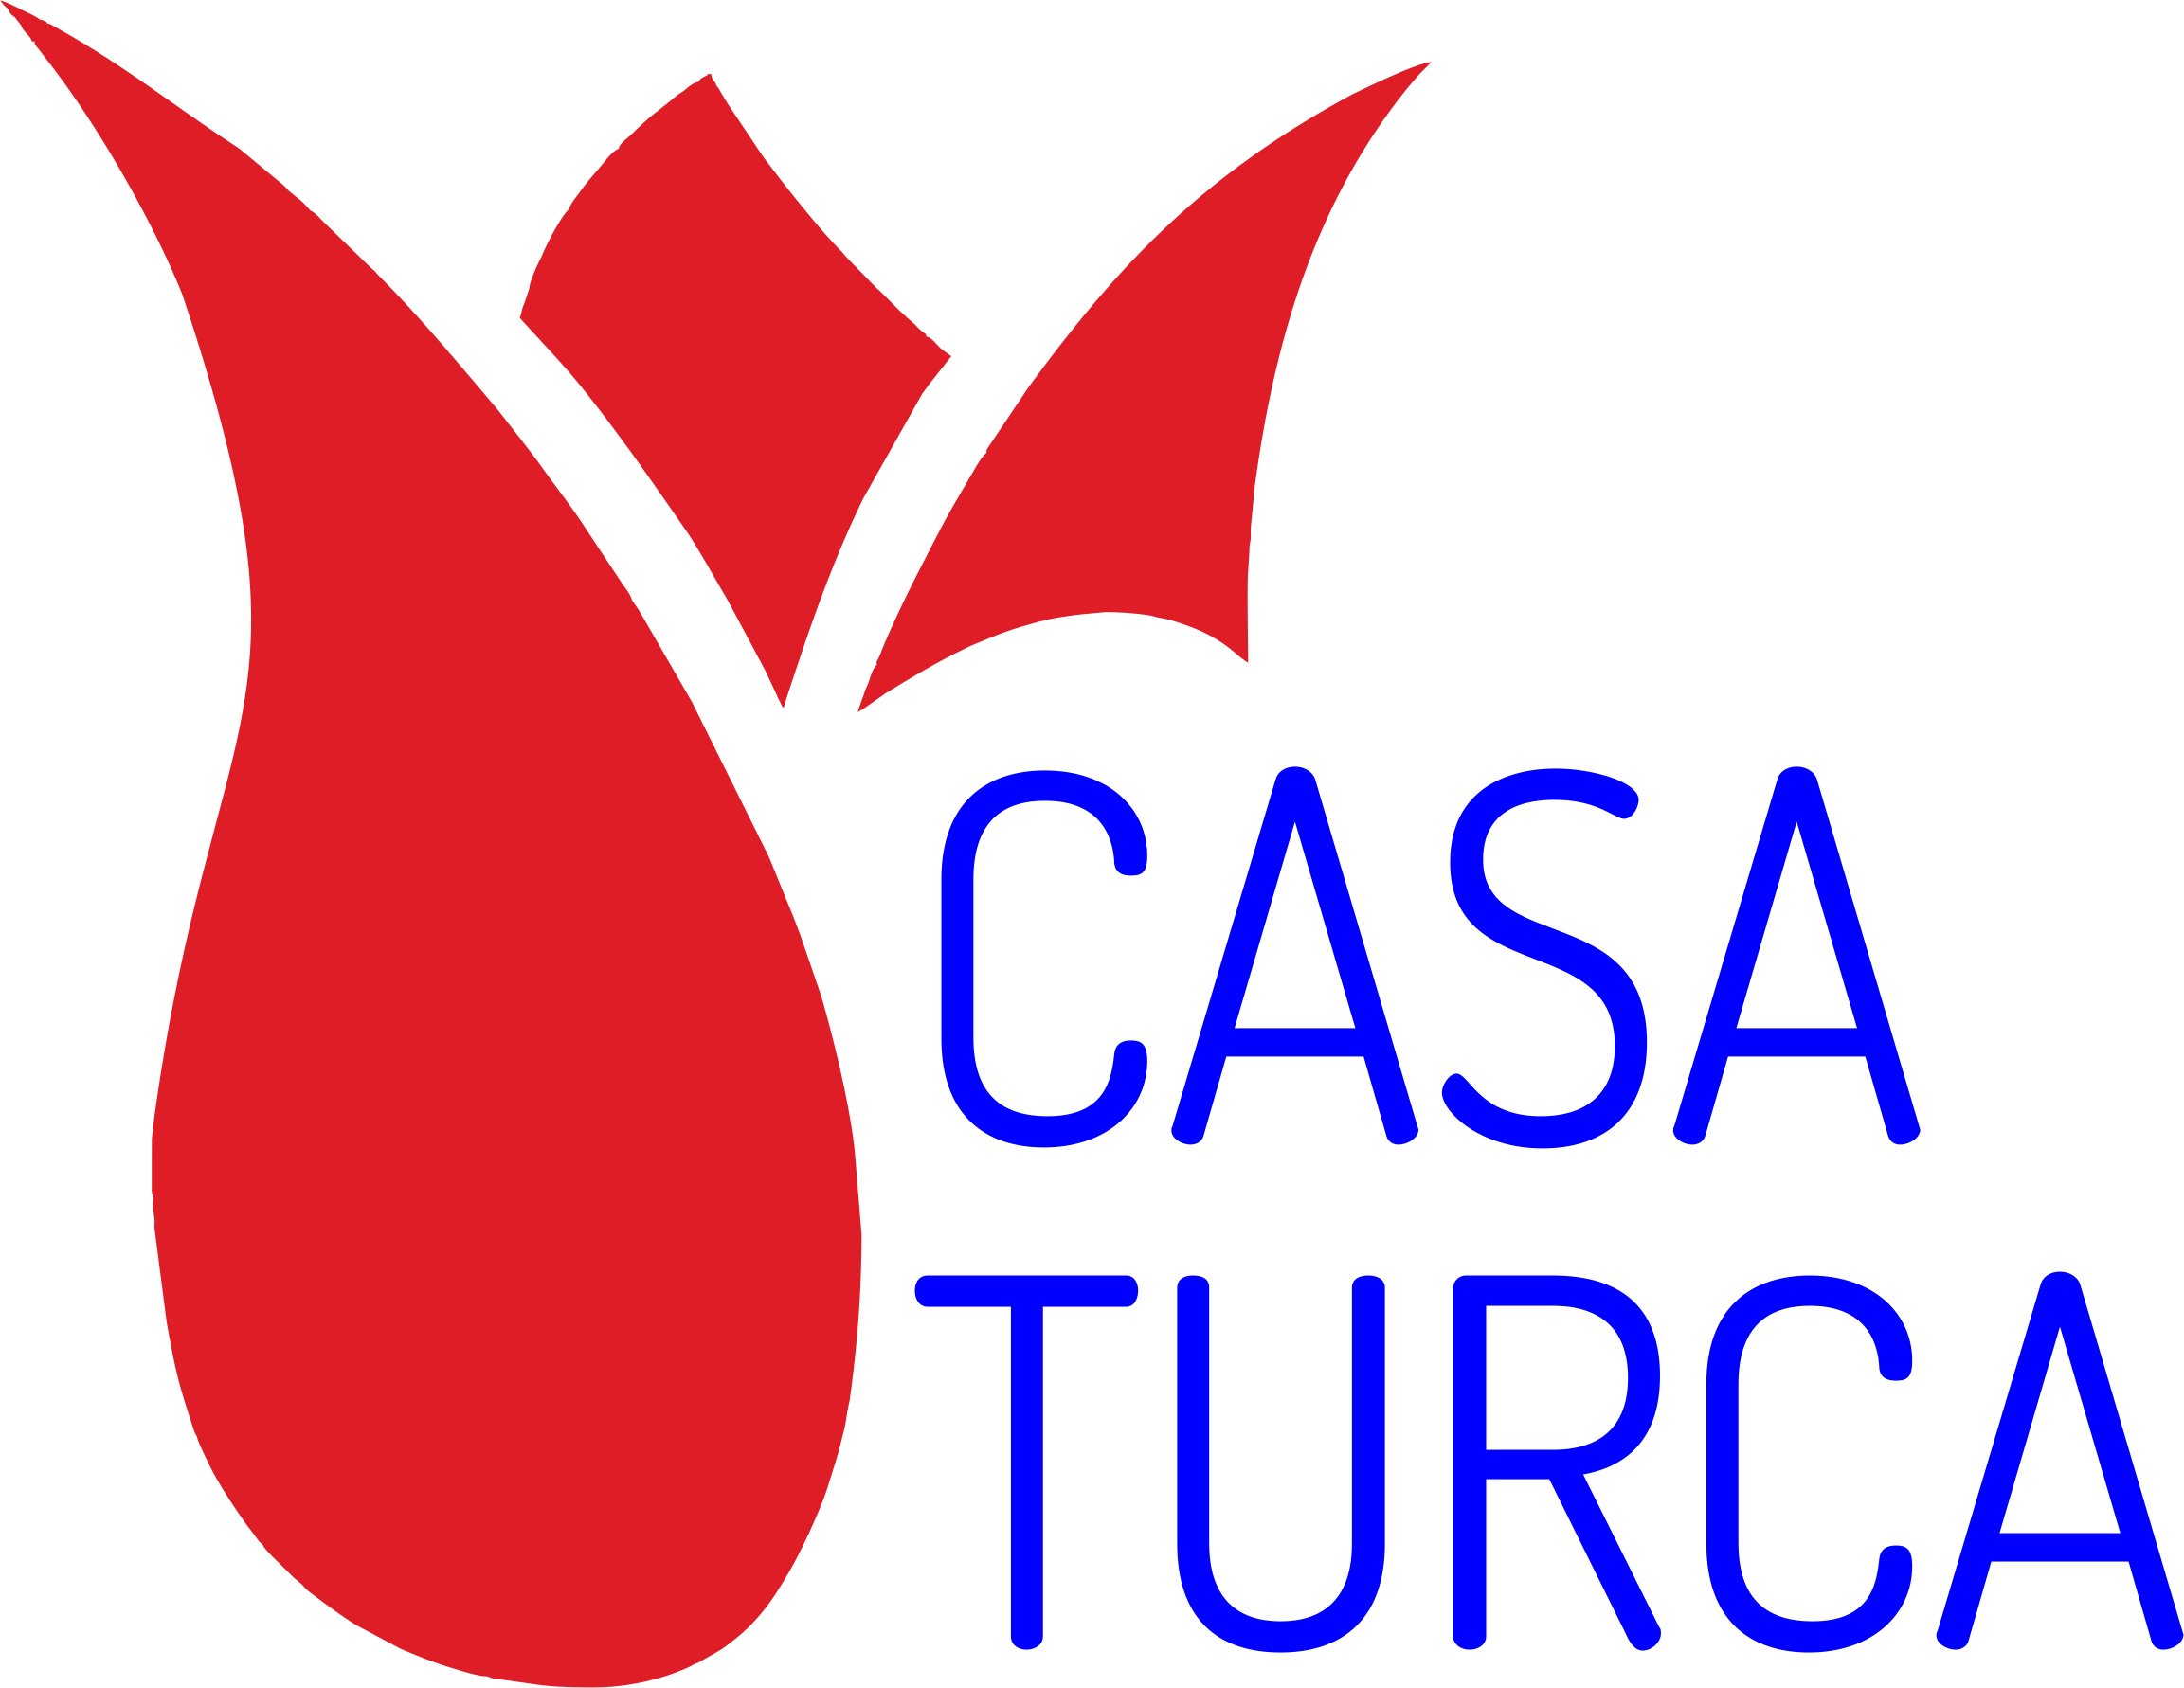 Casa Turca